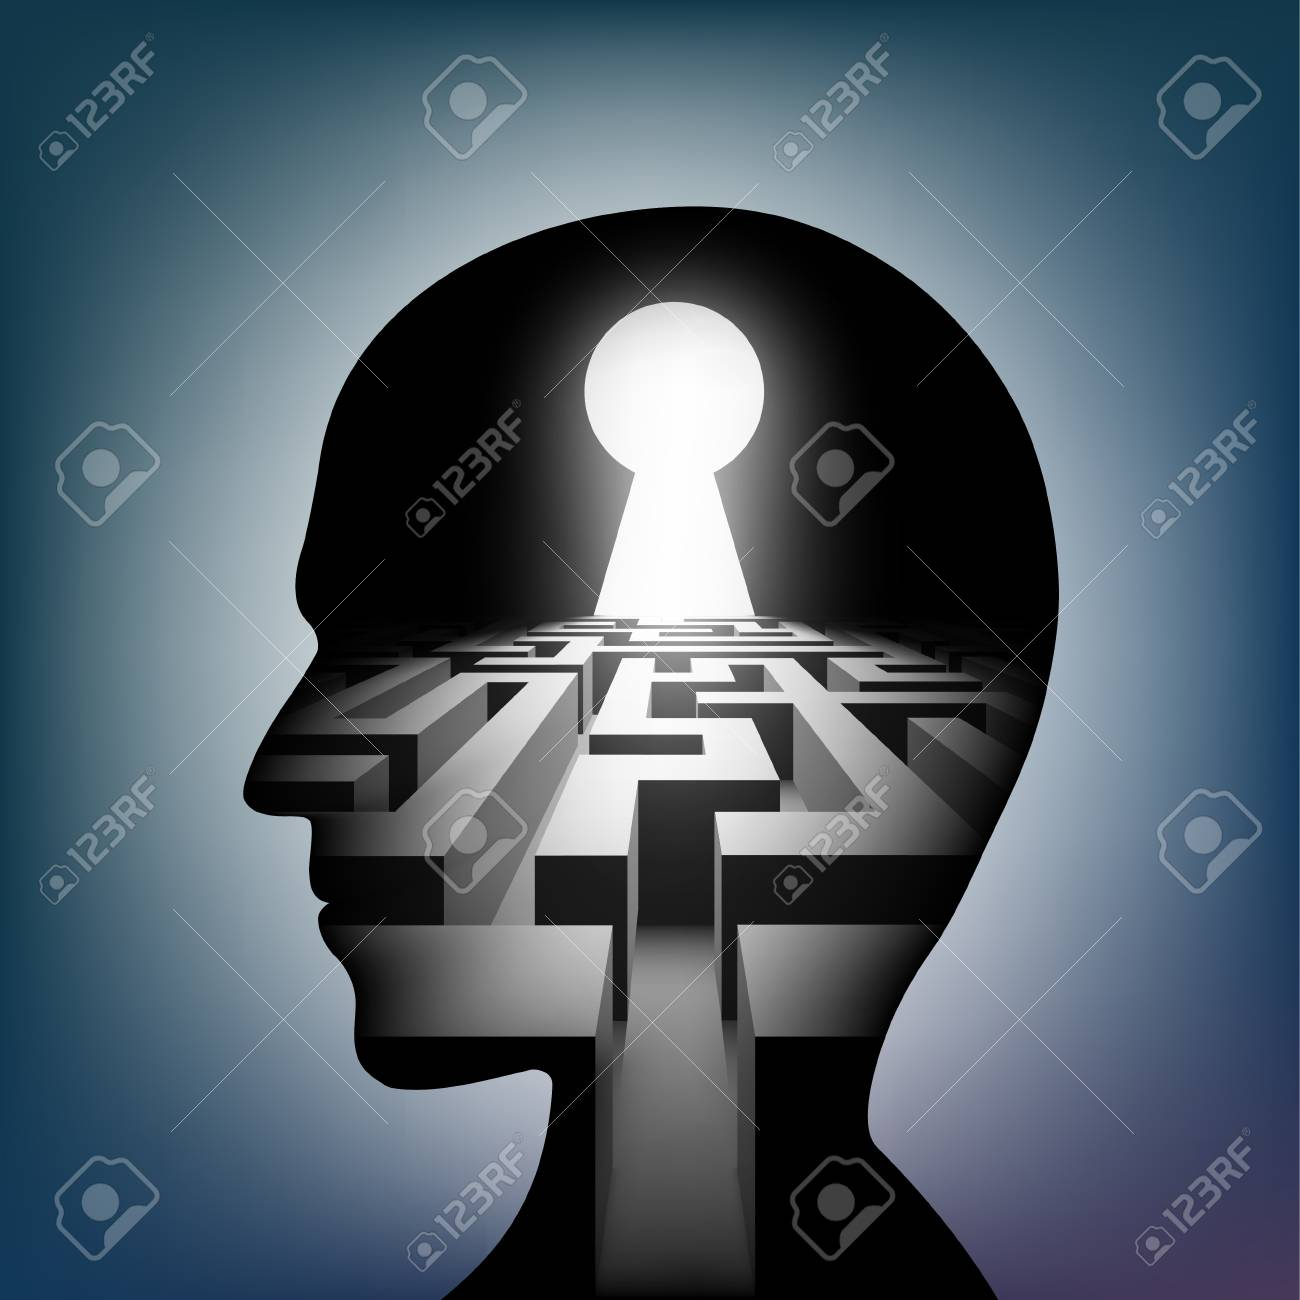 Labyrinth in the human head. Maze with a keyhole. Vector illustration. - 126055197